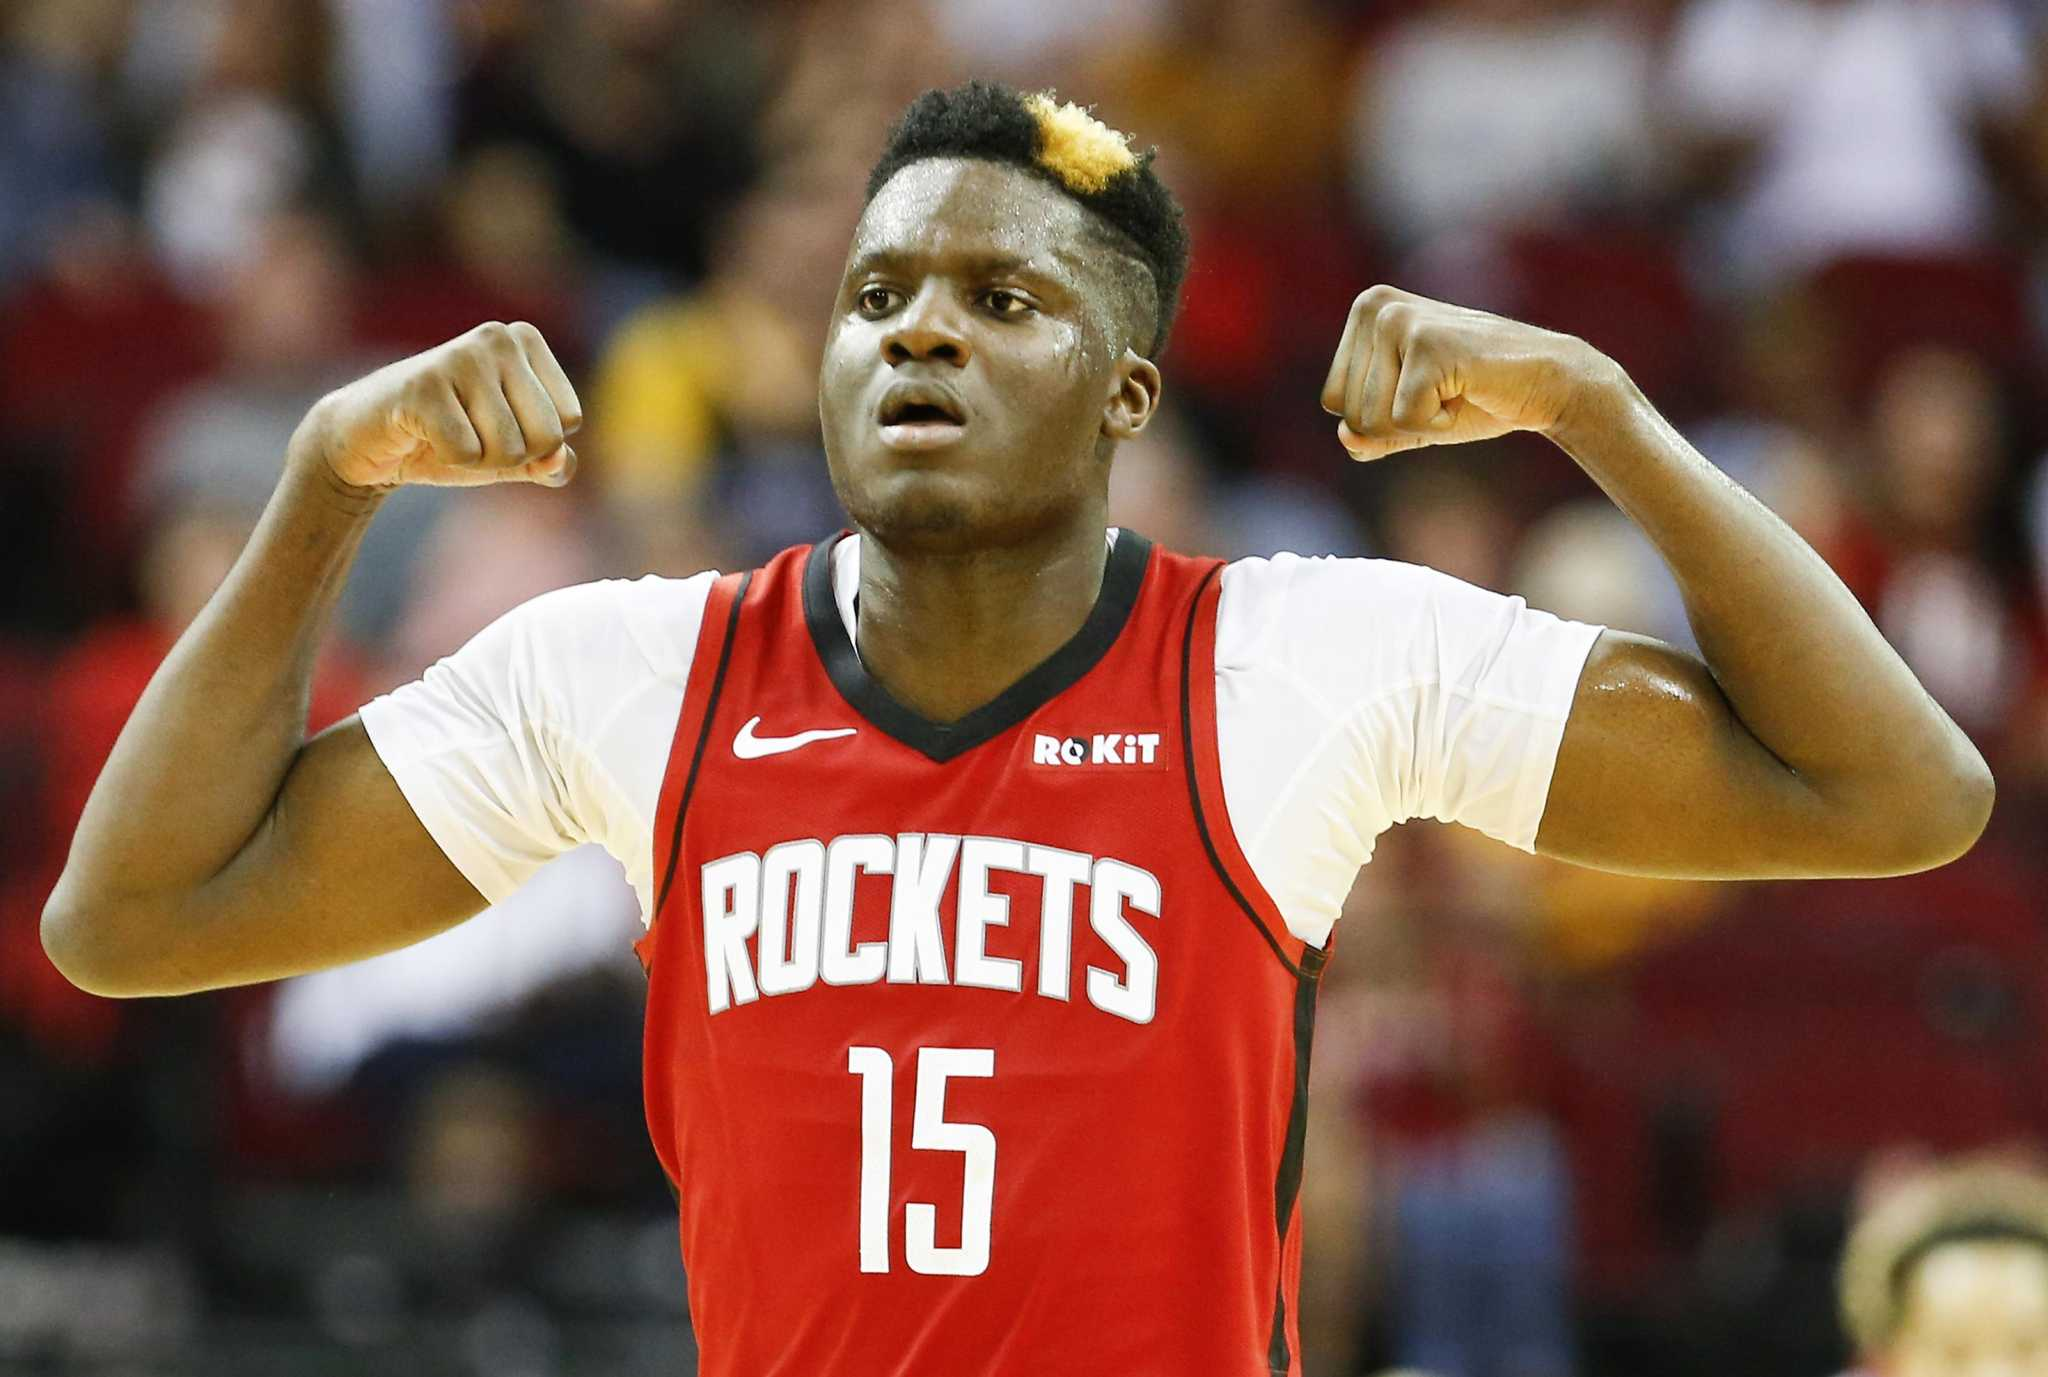 Clint Capela eager to get back on court for Rockets - HoustonChronicle.com